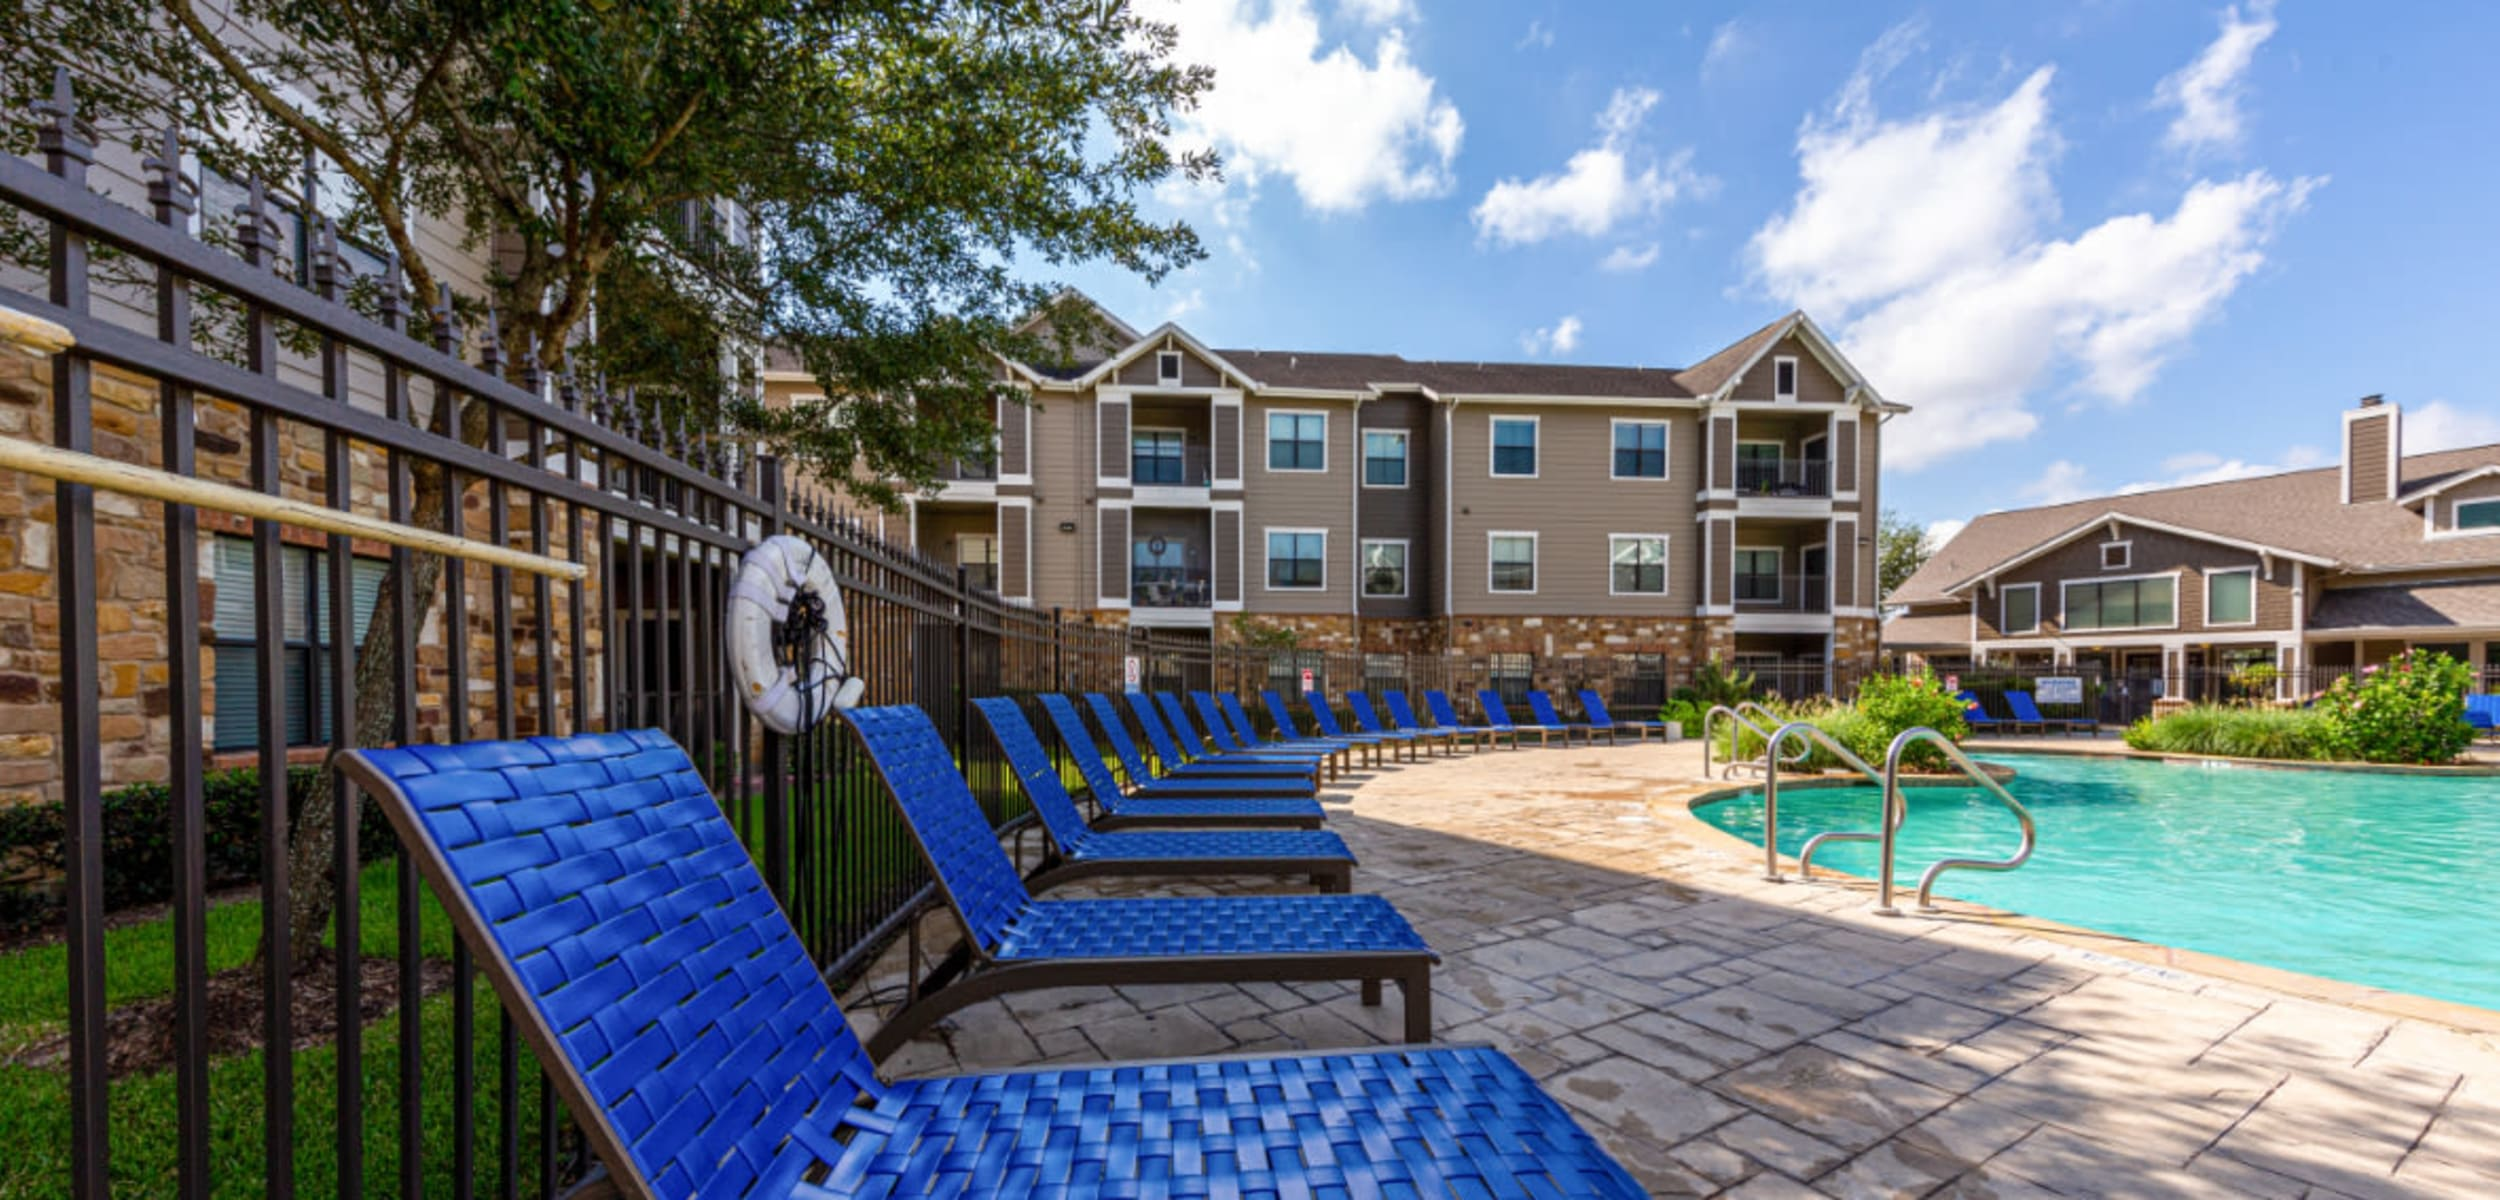 Pool deck and lounge area at Marquis at Katy in Katy Texas,